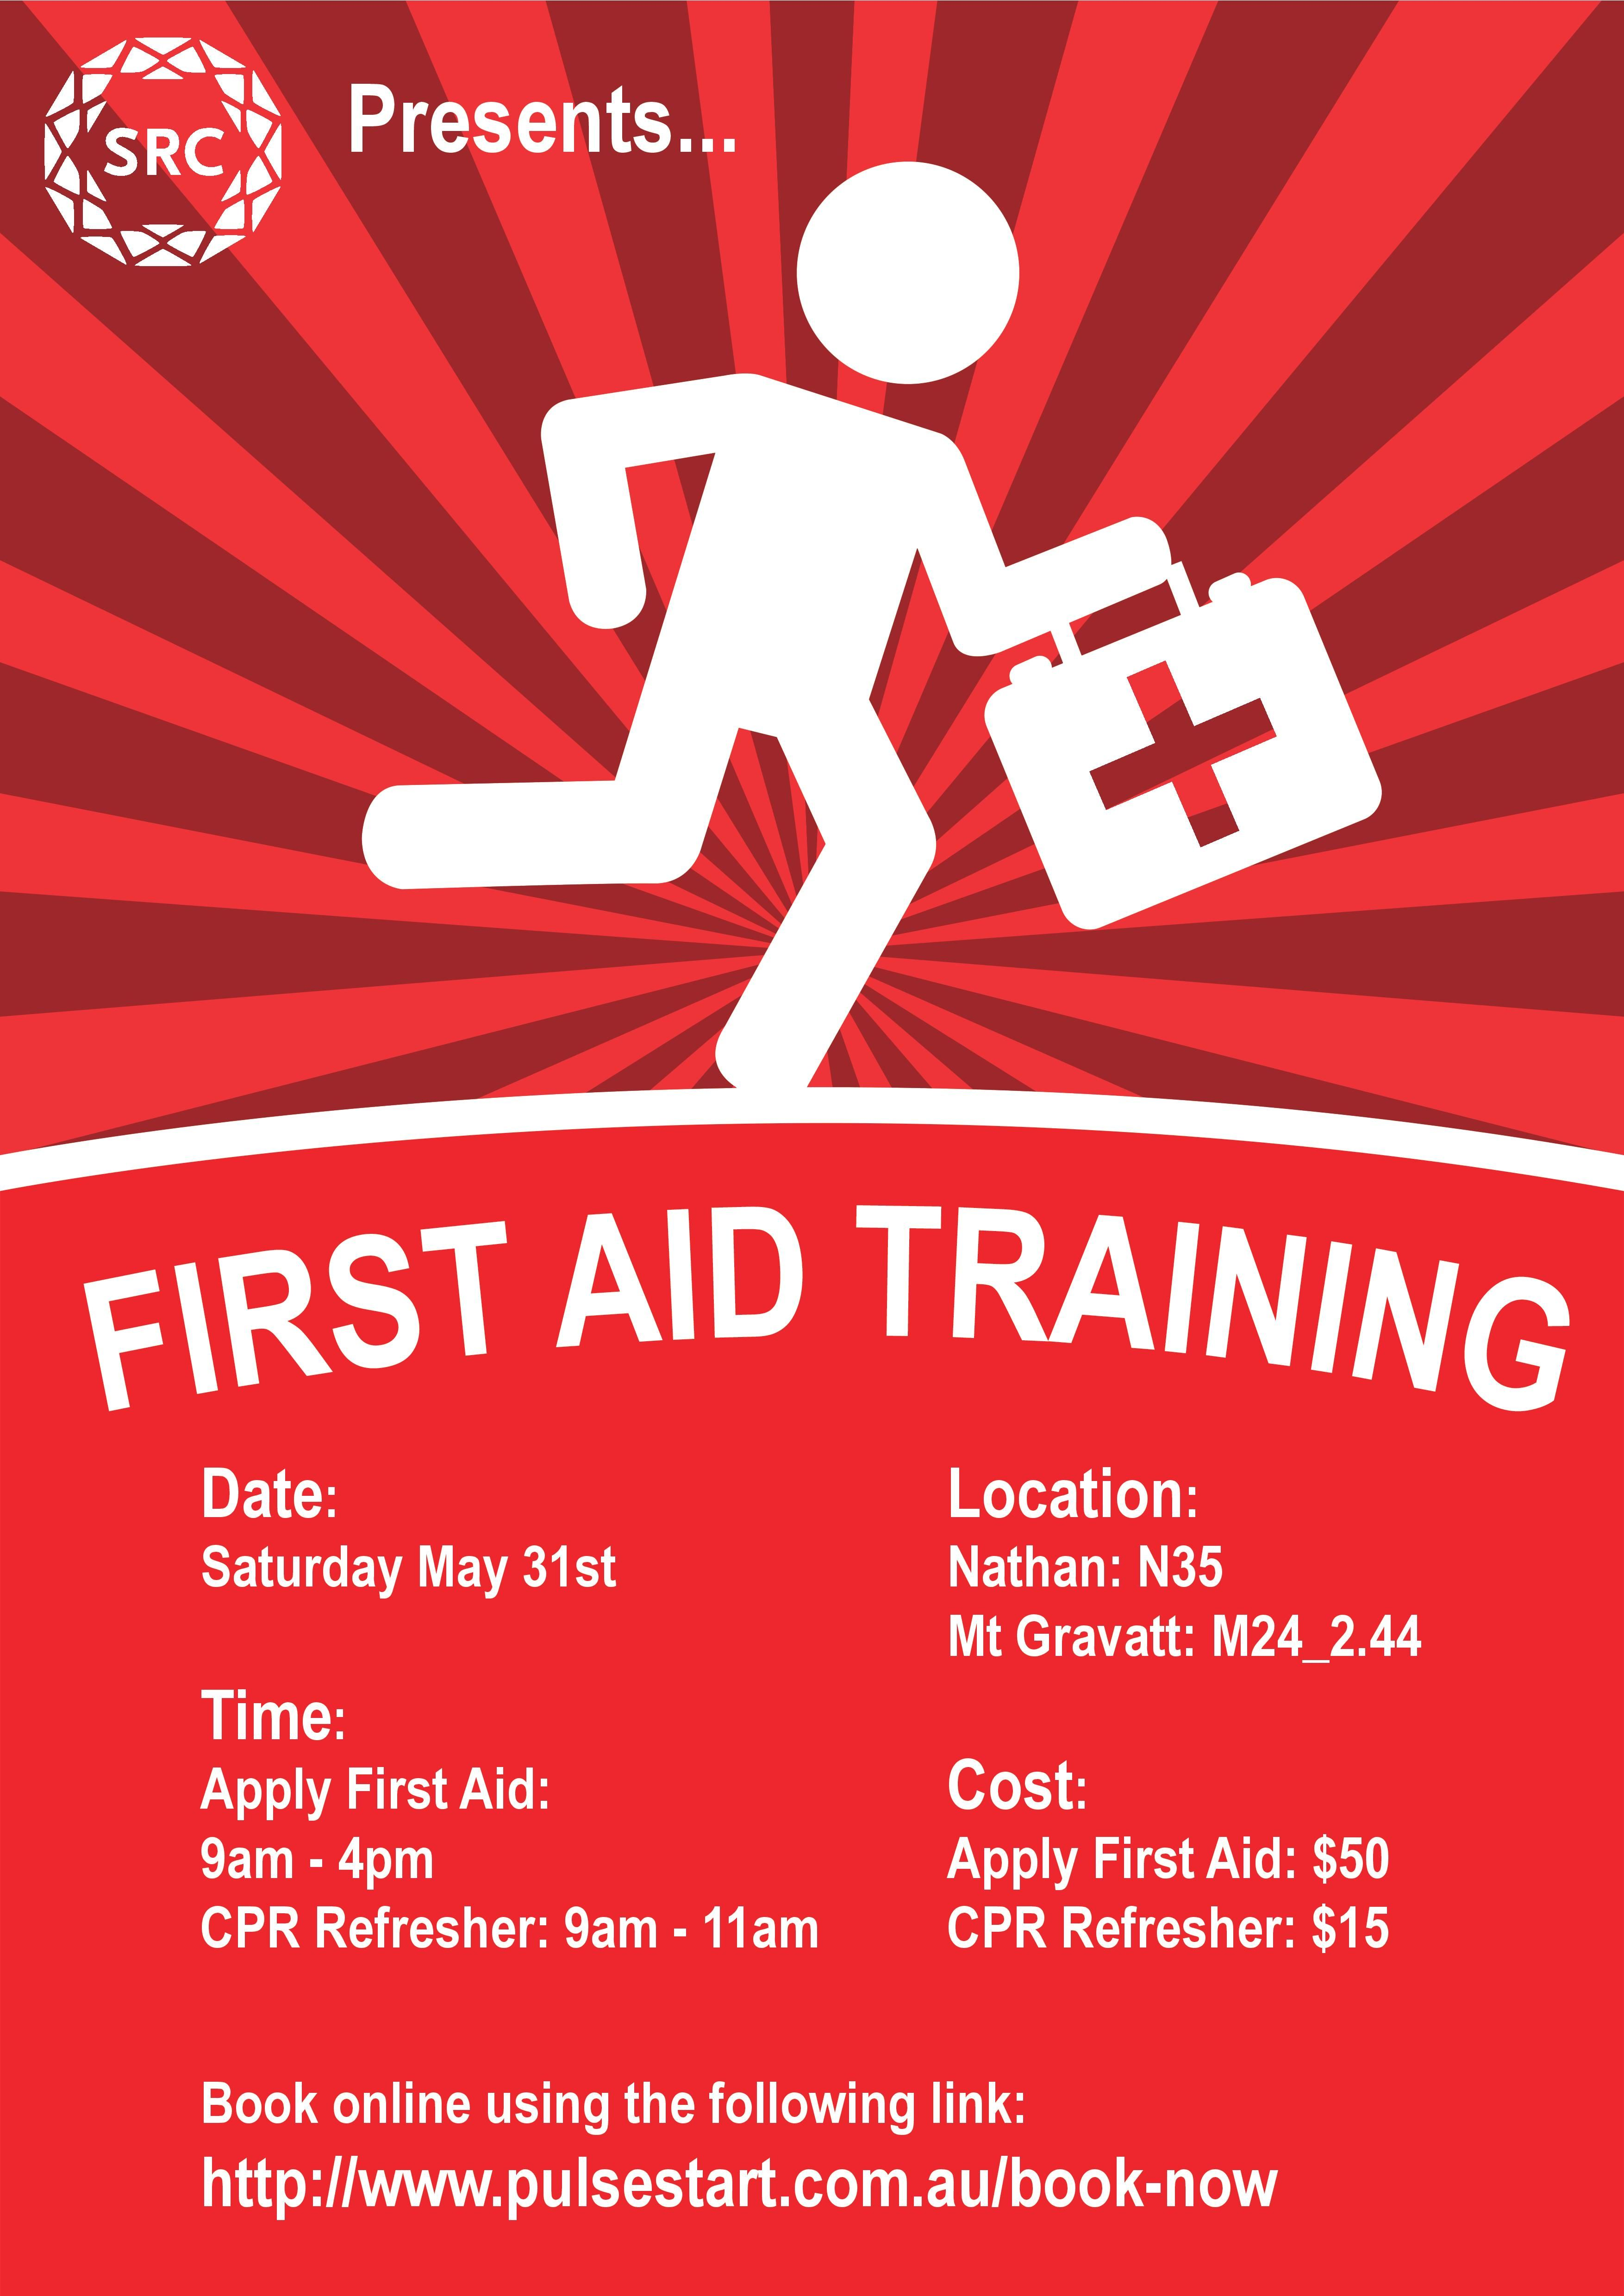 First Aid Training Poster